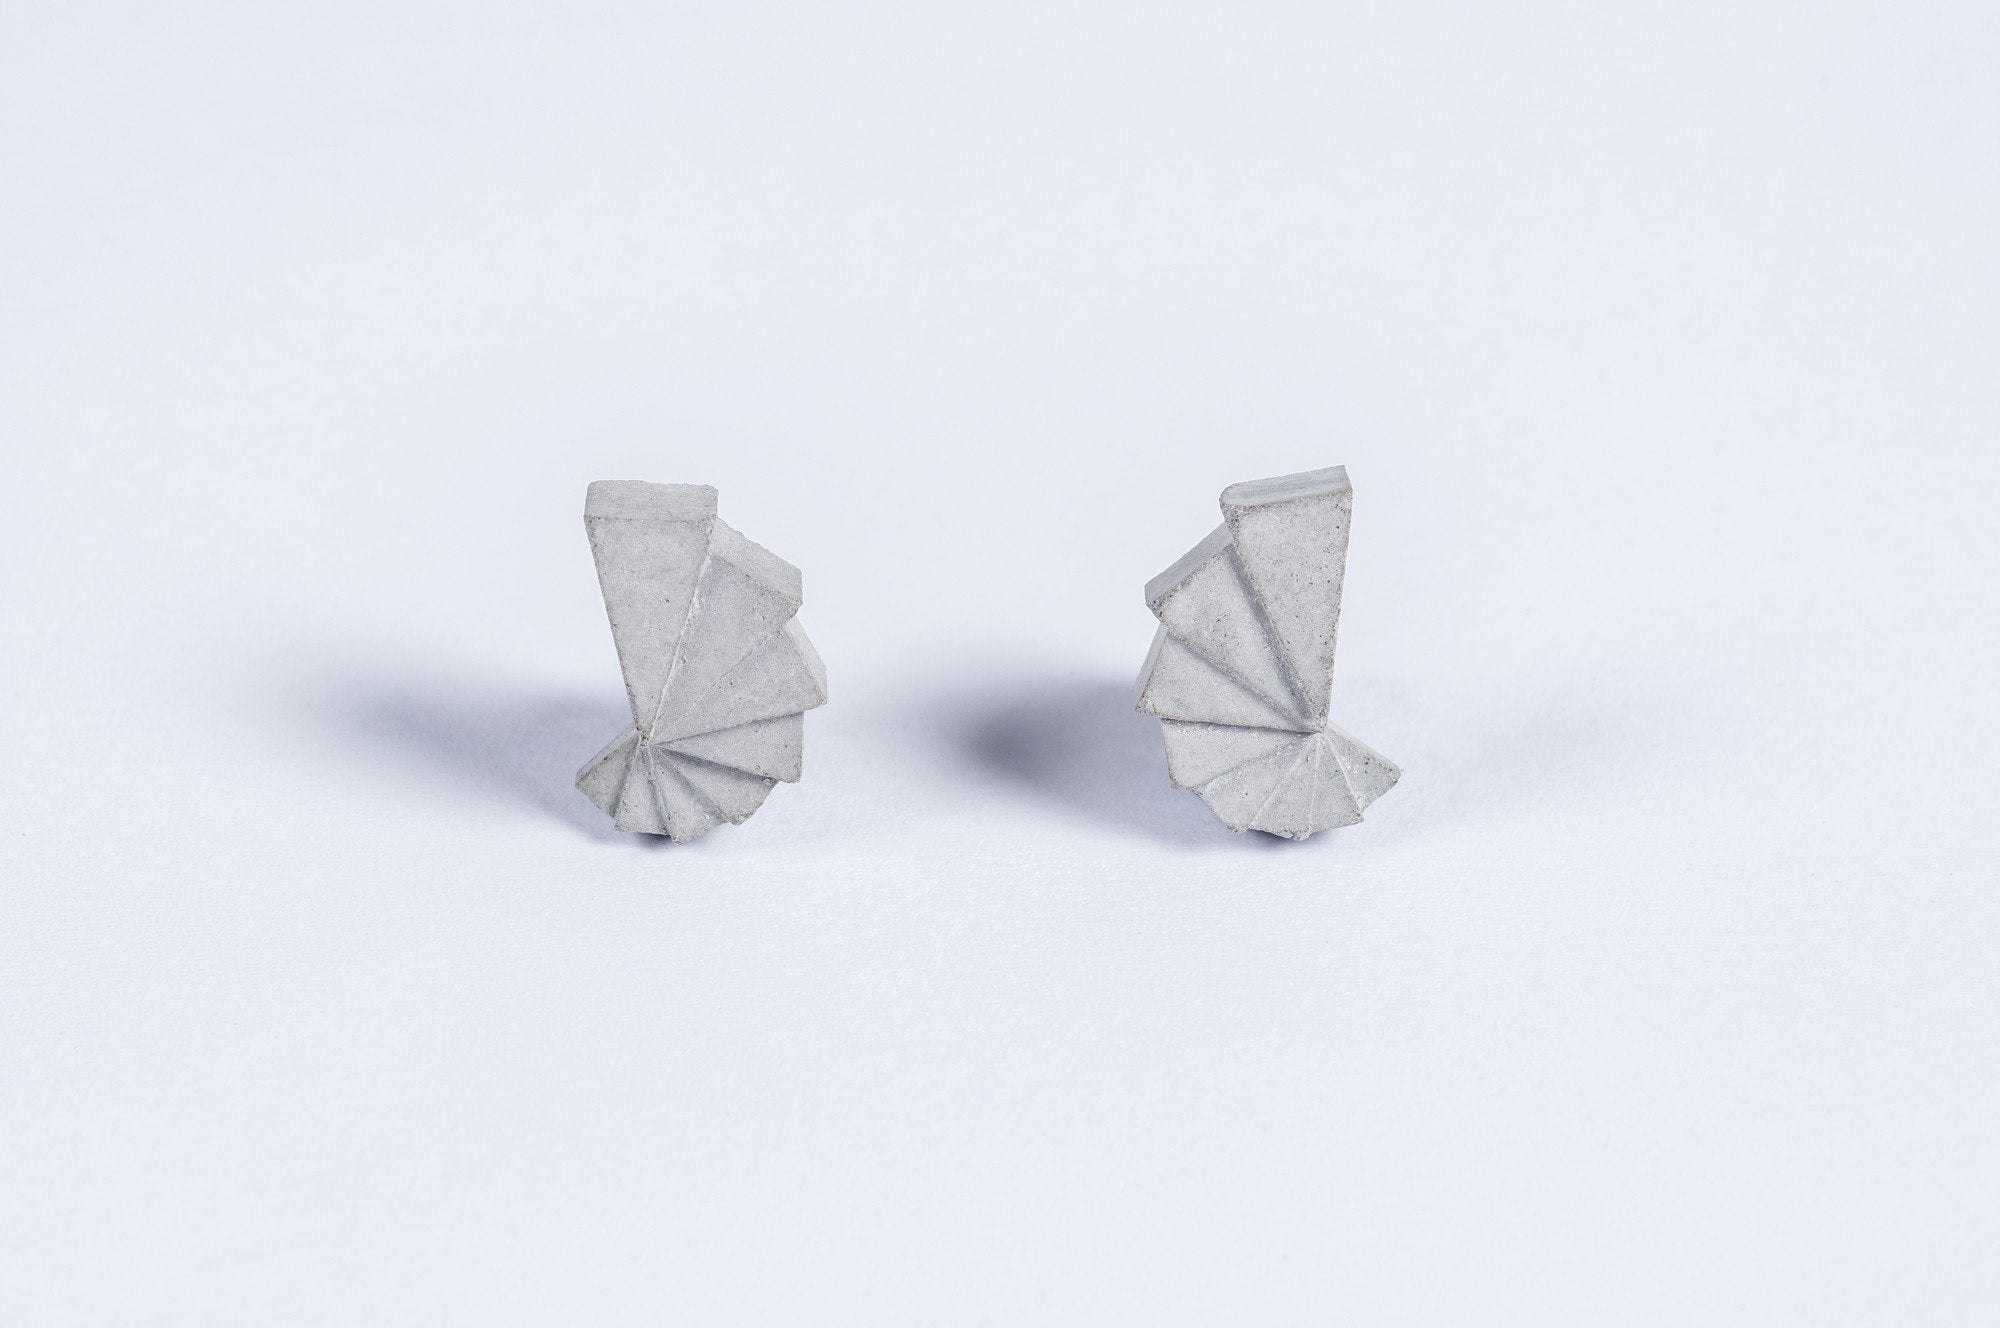 Micro Concrete Earrings #1